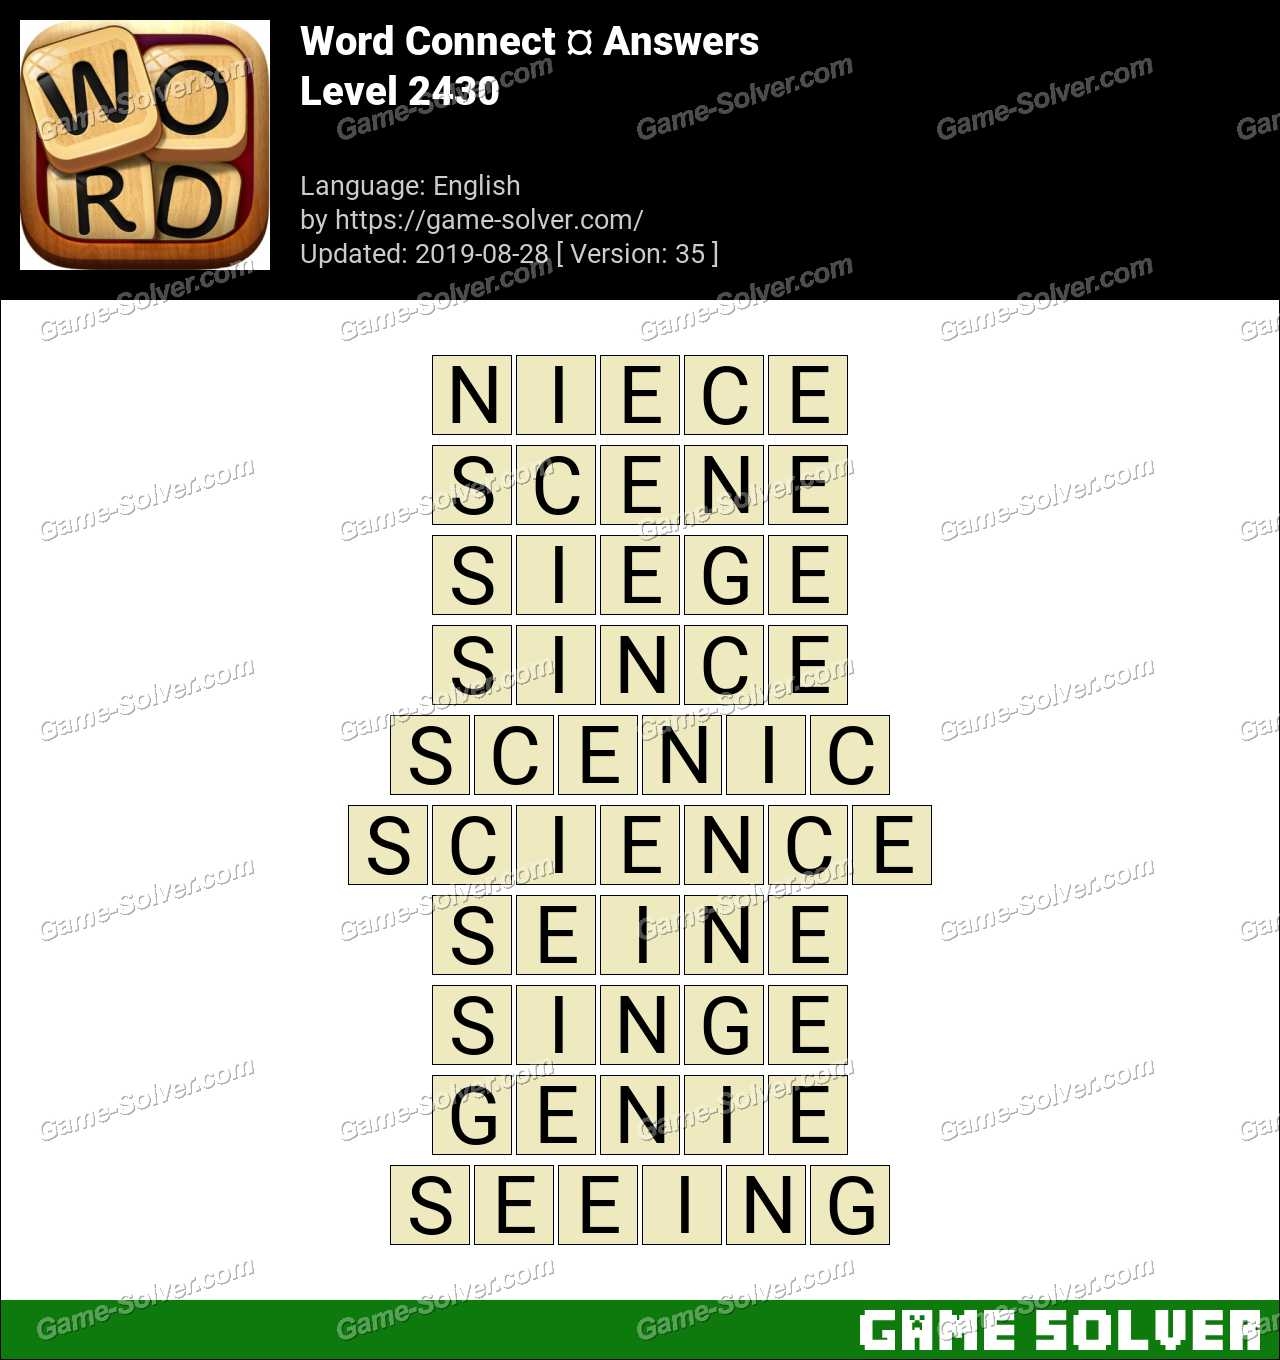 Word Connect Level 2430 Answers